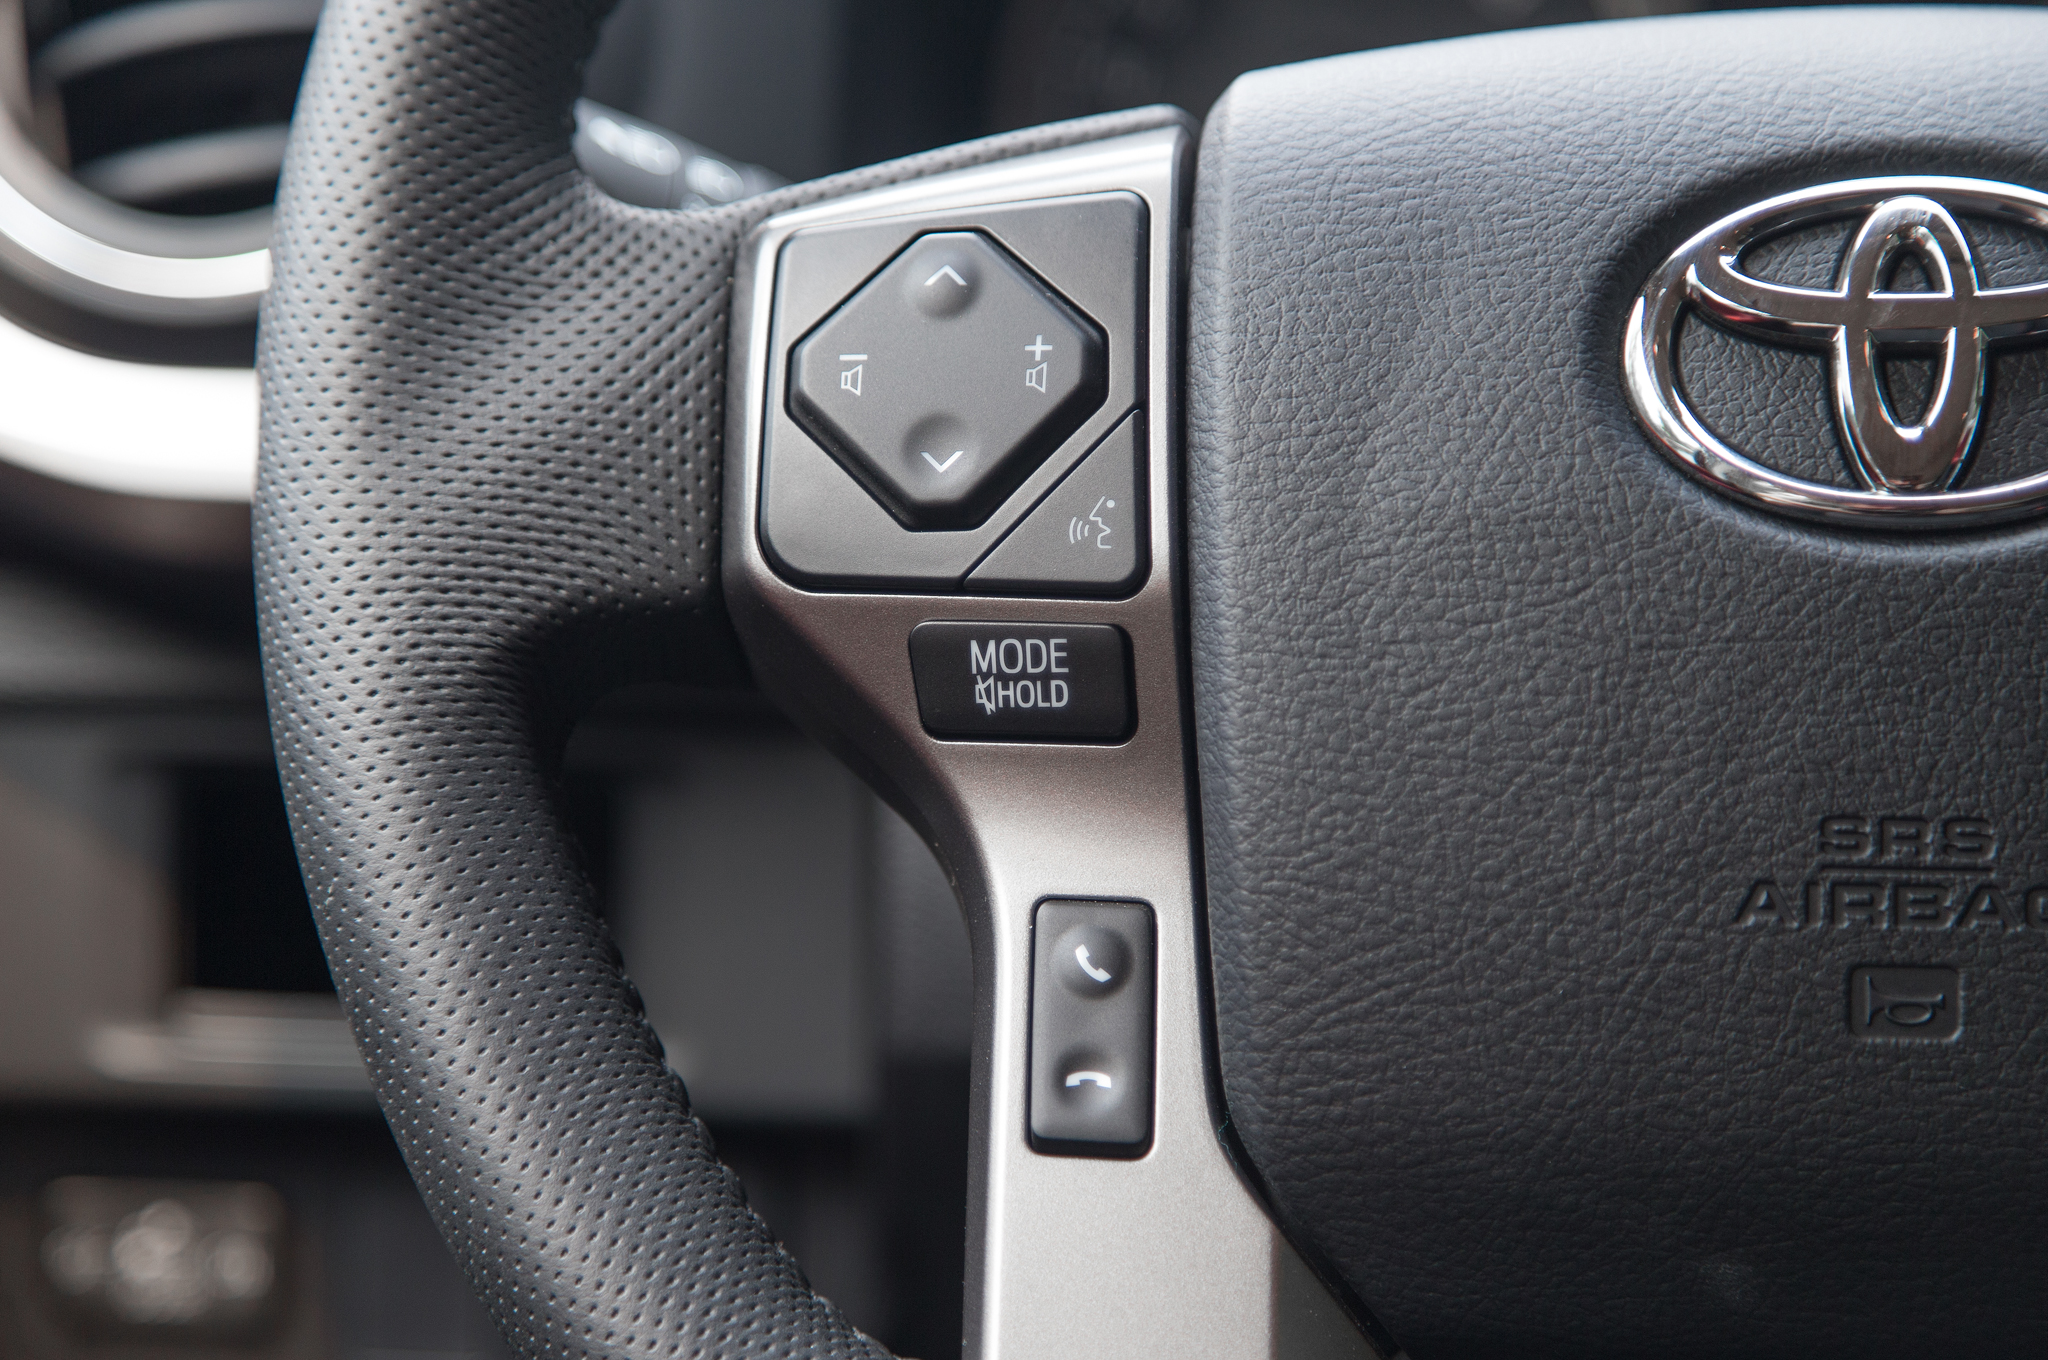 Toyota Sienna 2010-2018 Owners Manual: Adjusting the steeringwheel and mirrors